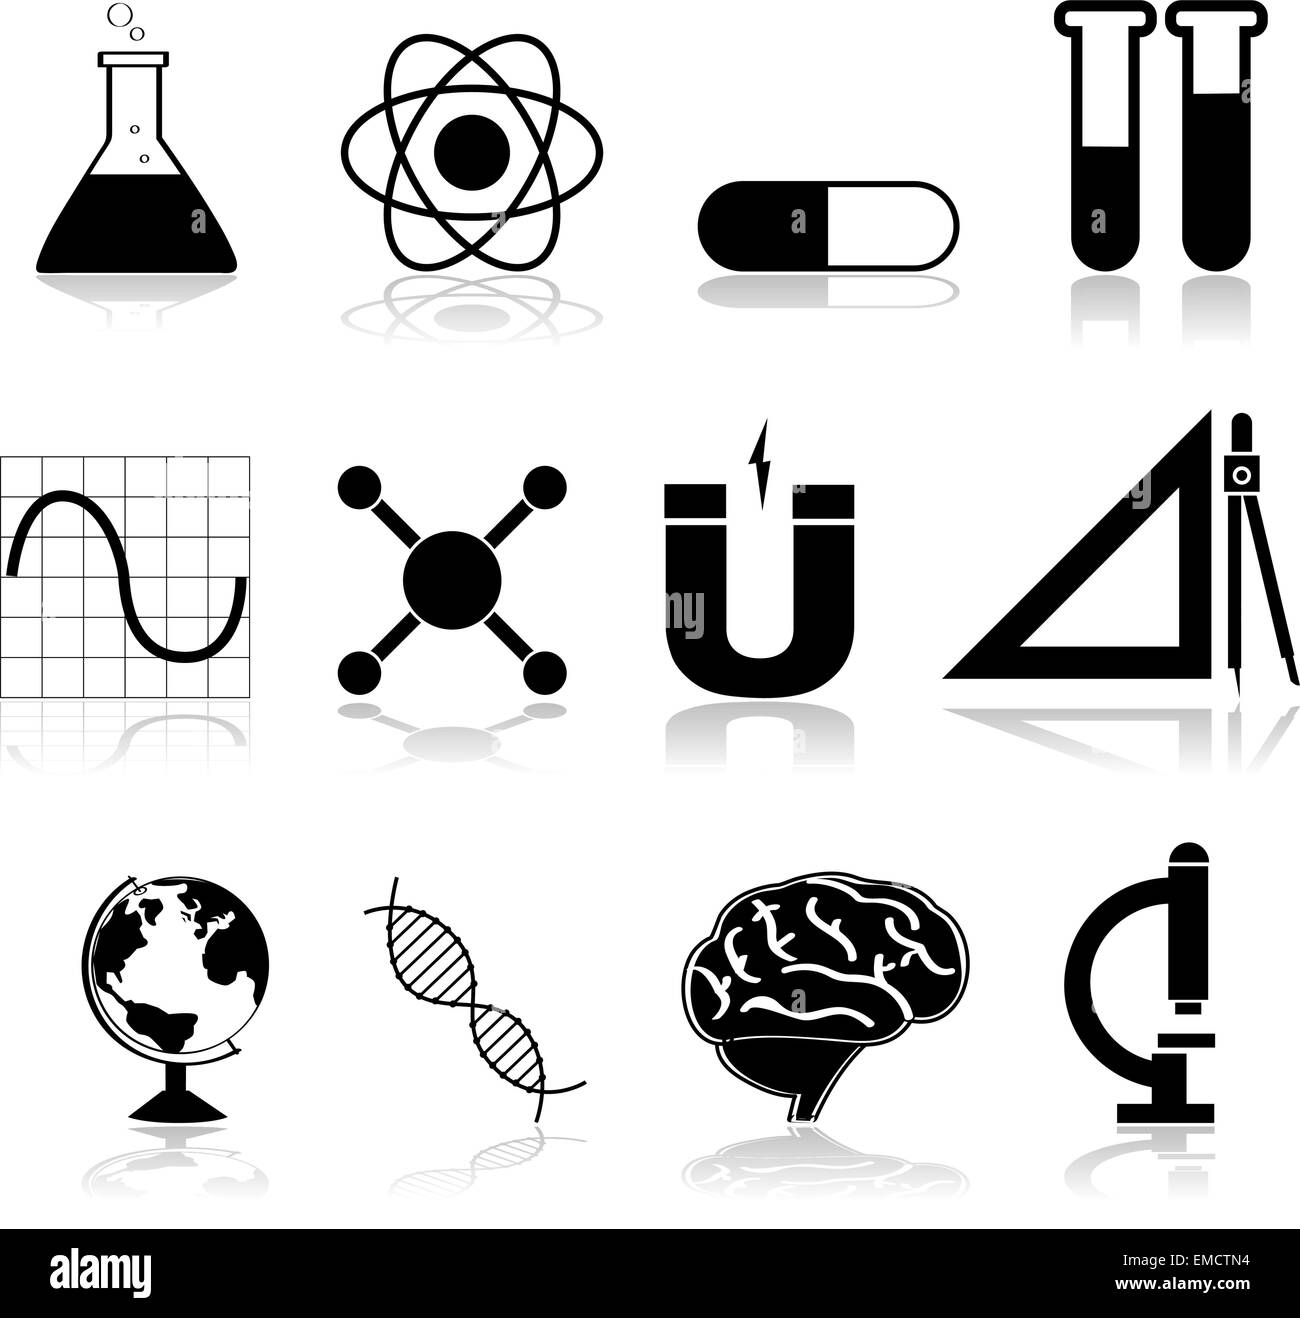 Science Icons Stock Vector Art Illustration Vector Image